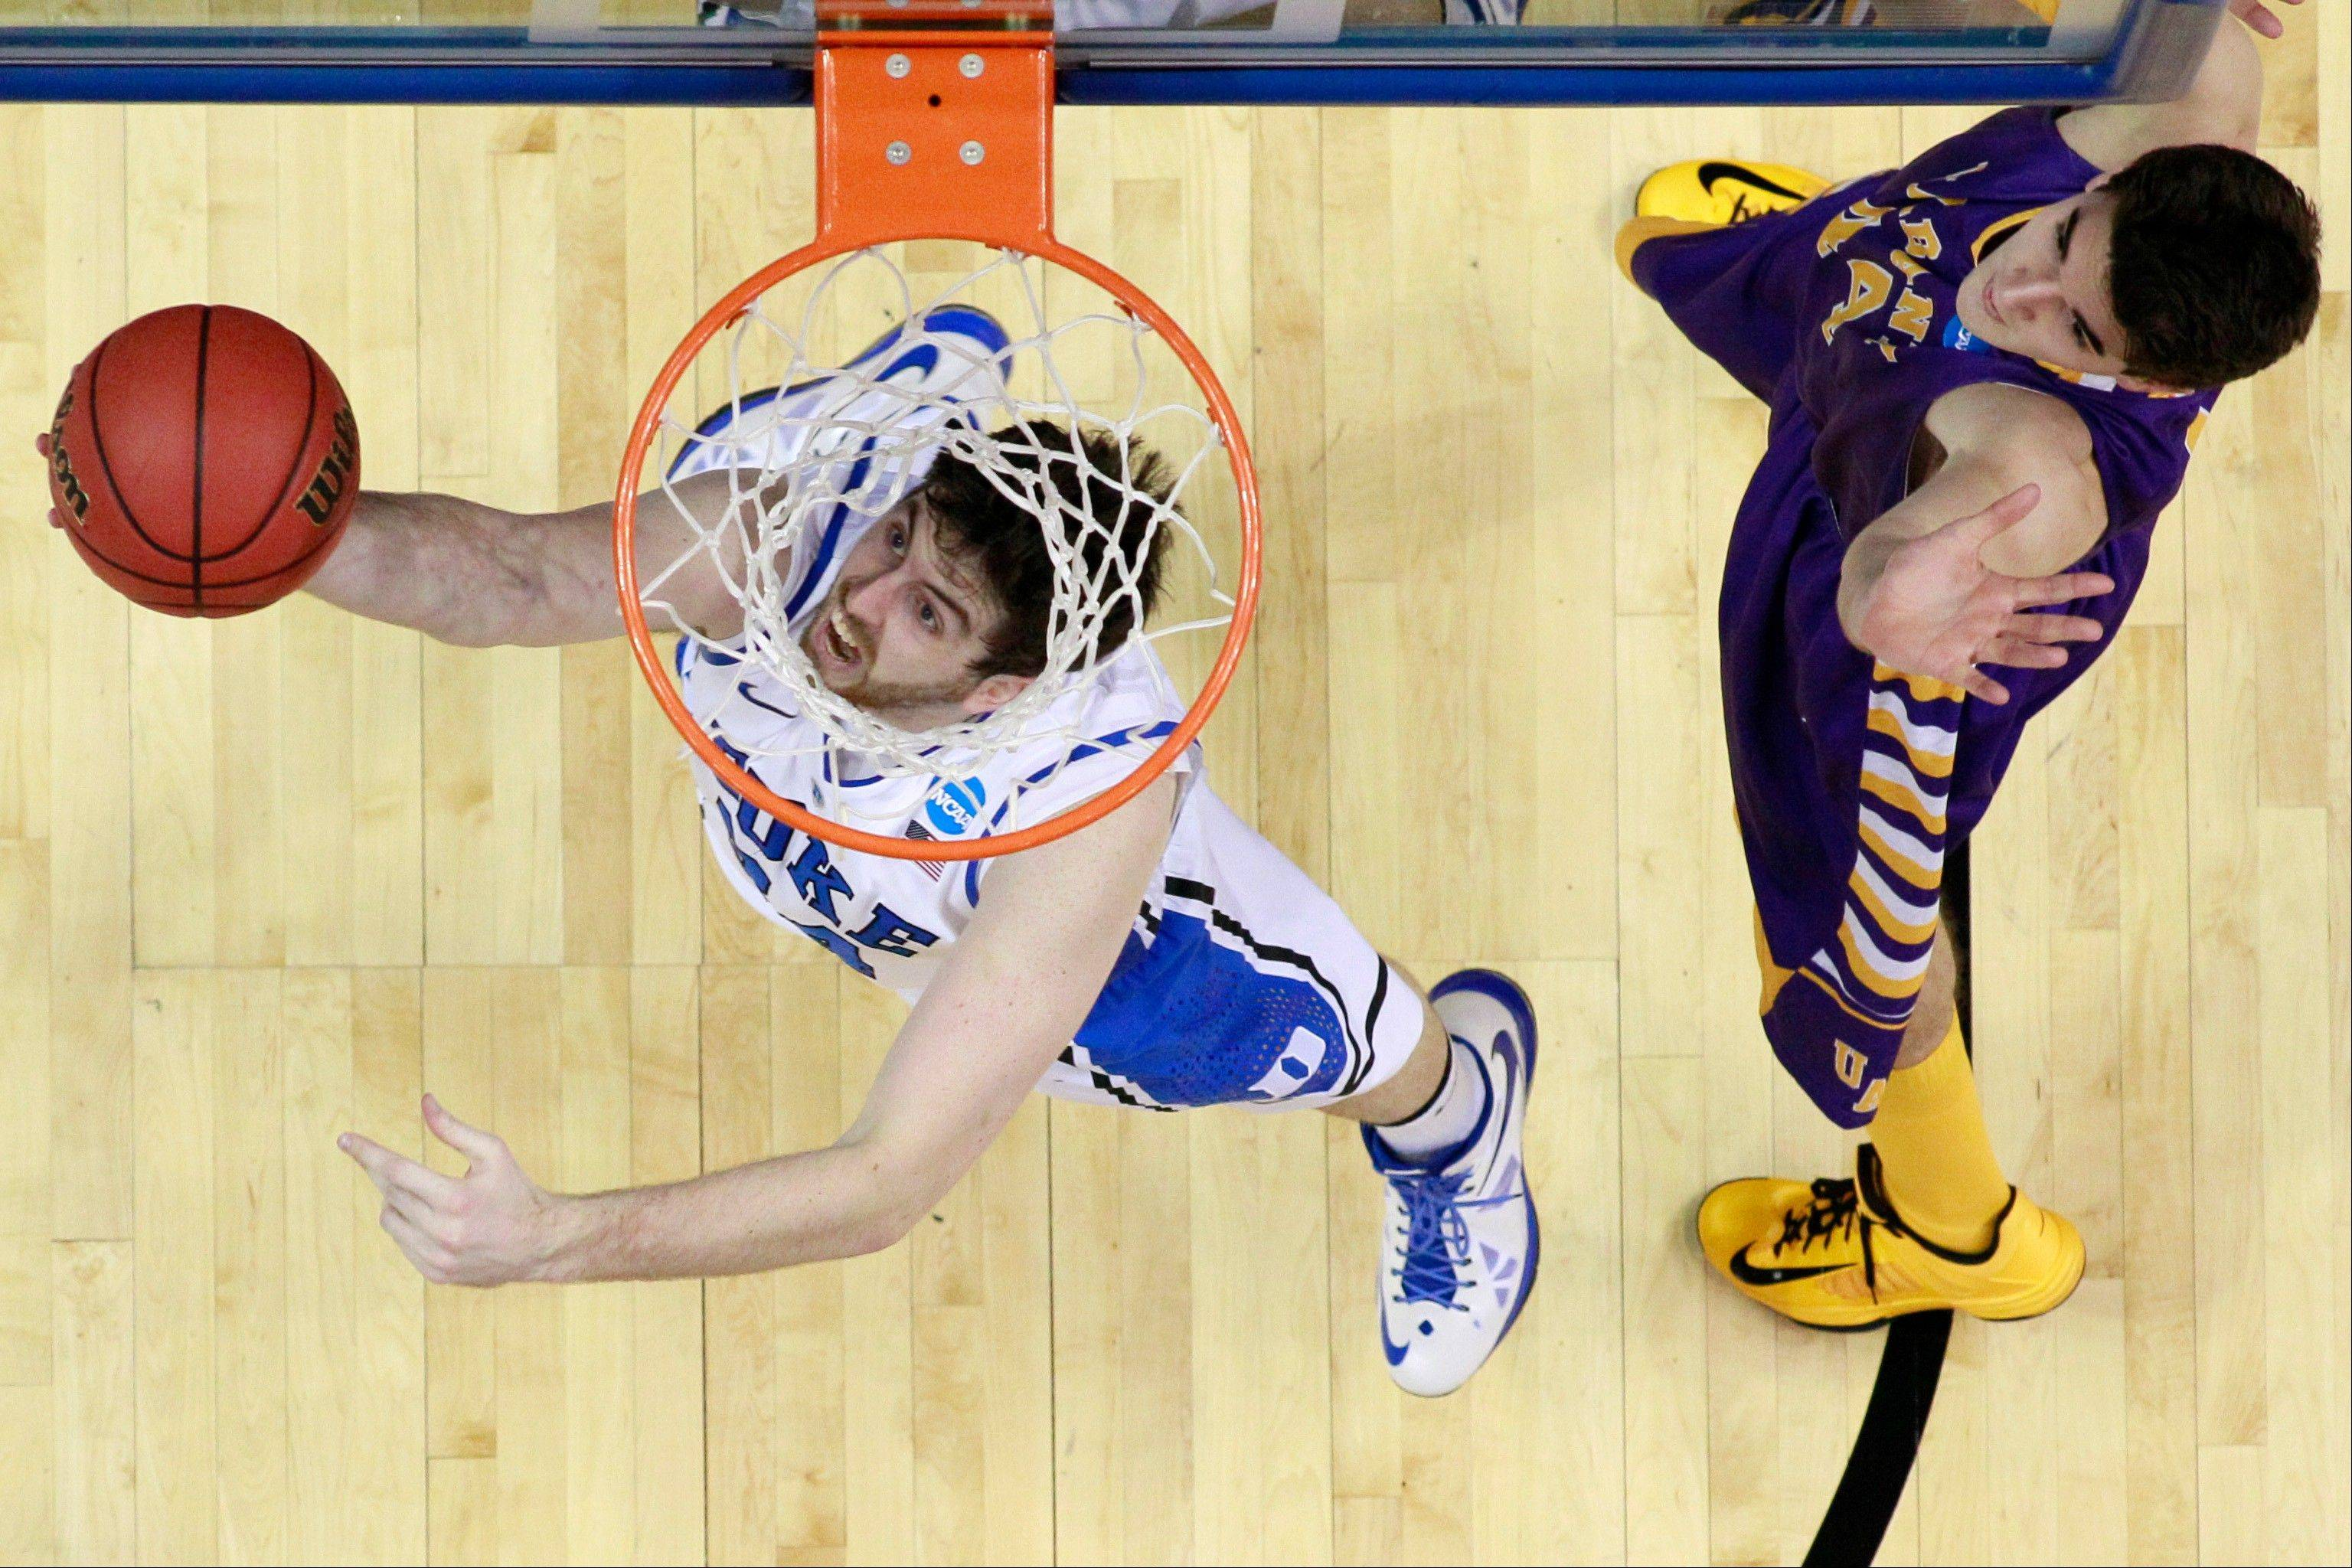 Duke's Ryan Kelly, left, goes up for a shot as Albany's John Puk defends Friday during the first half of a second round game of the NCAA tournament in Philadelphia.